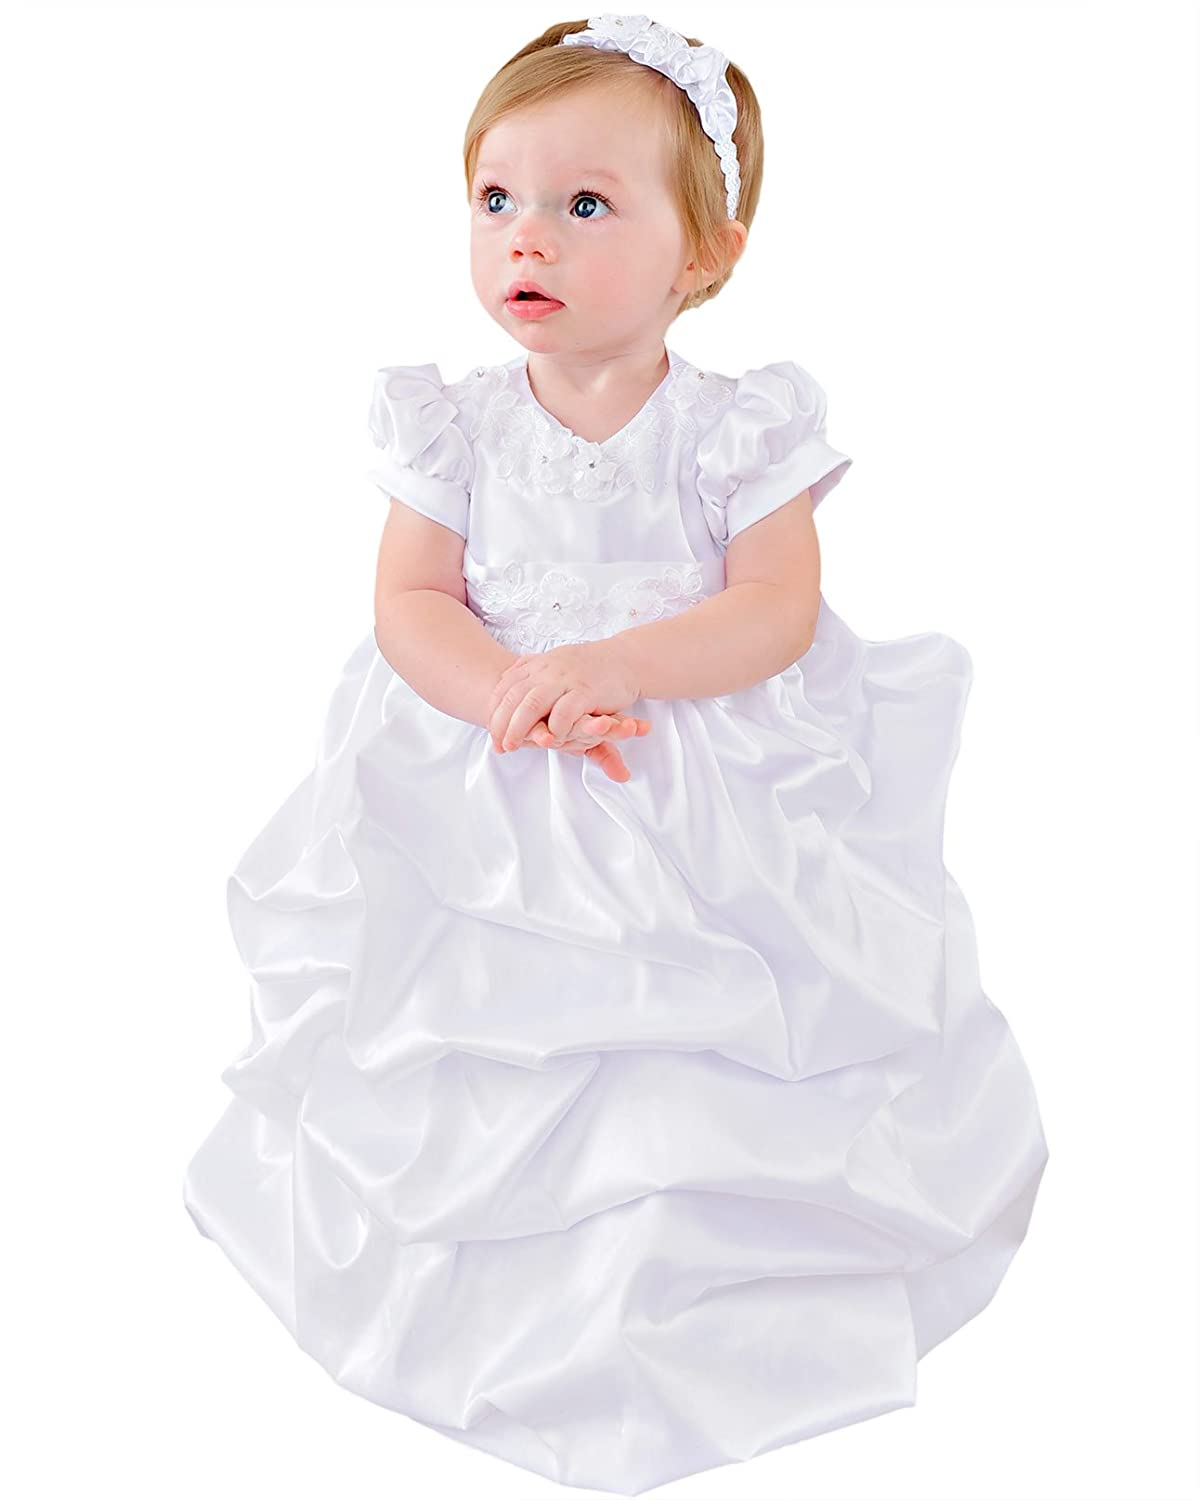 Eleanor 9 Month Girls Christening Gown, Made in USA One Small Child 3087